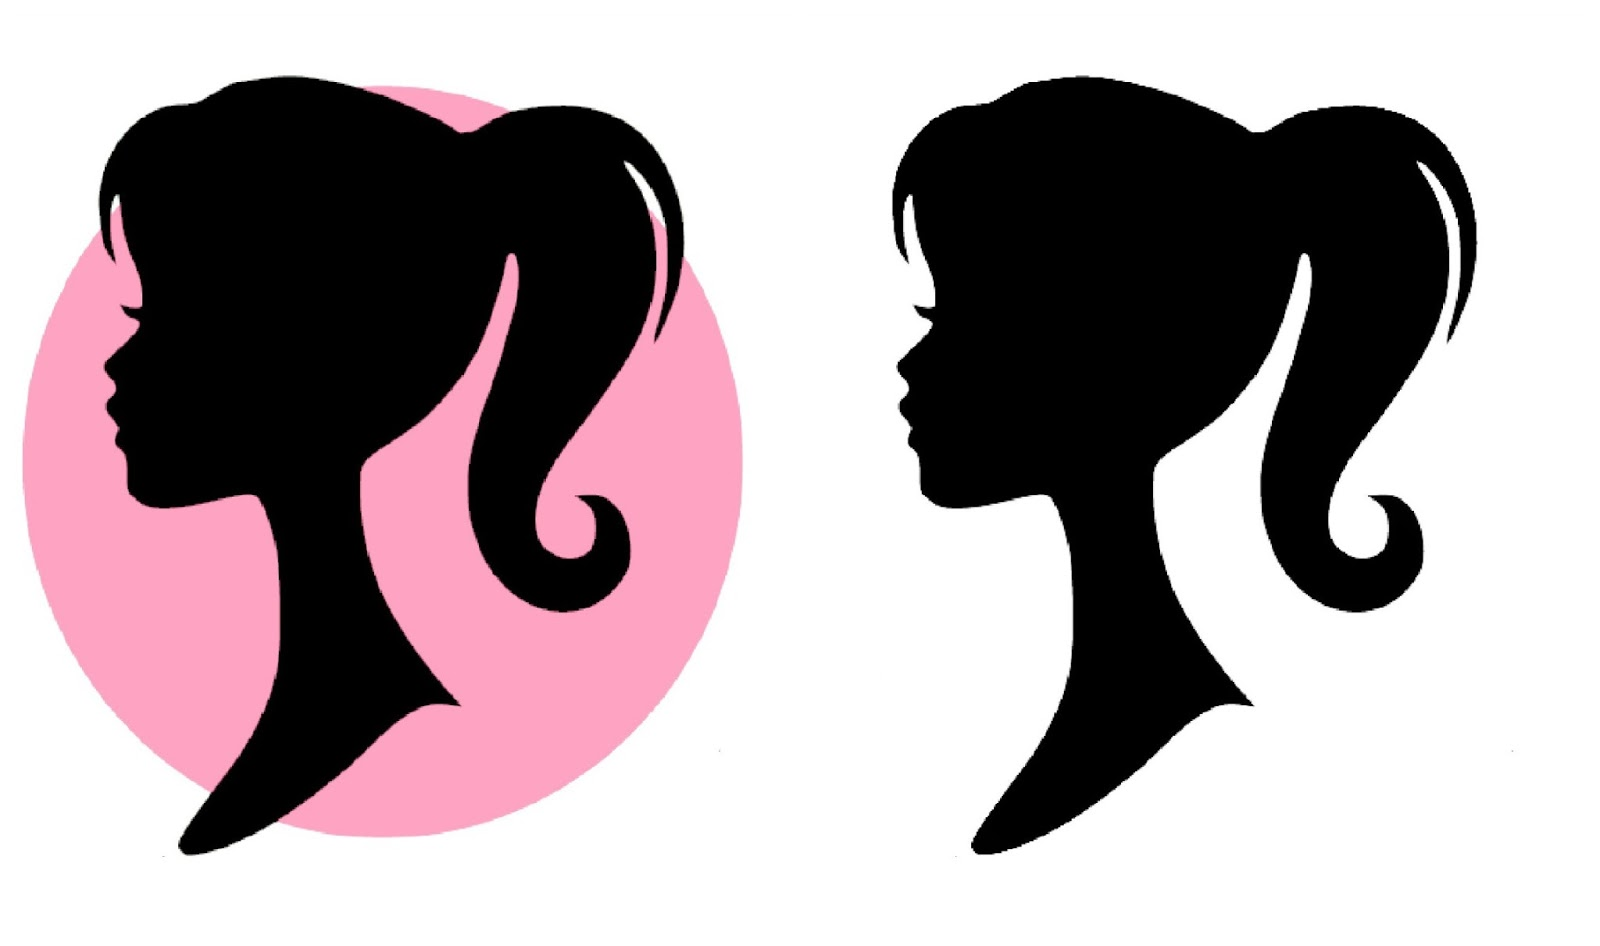 Free image download clip. Barbie clipart silhouette